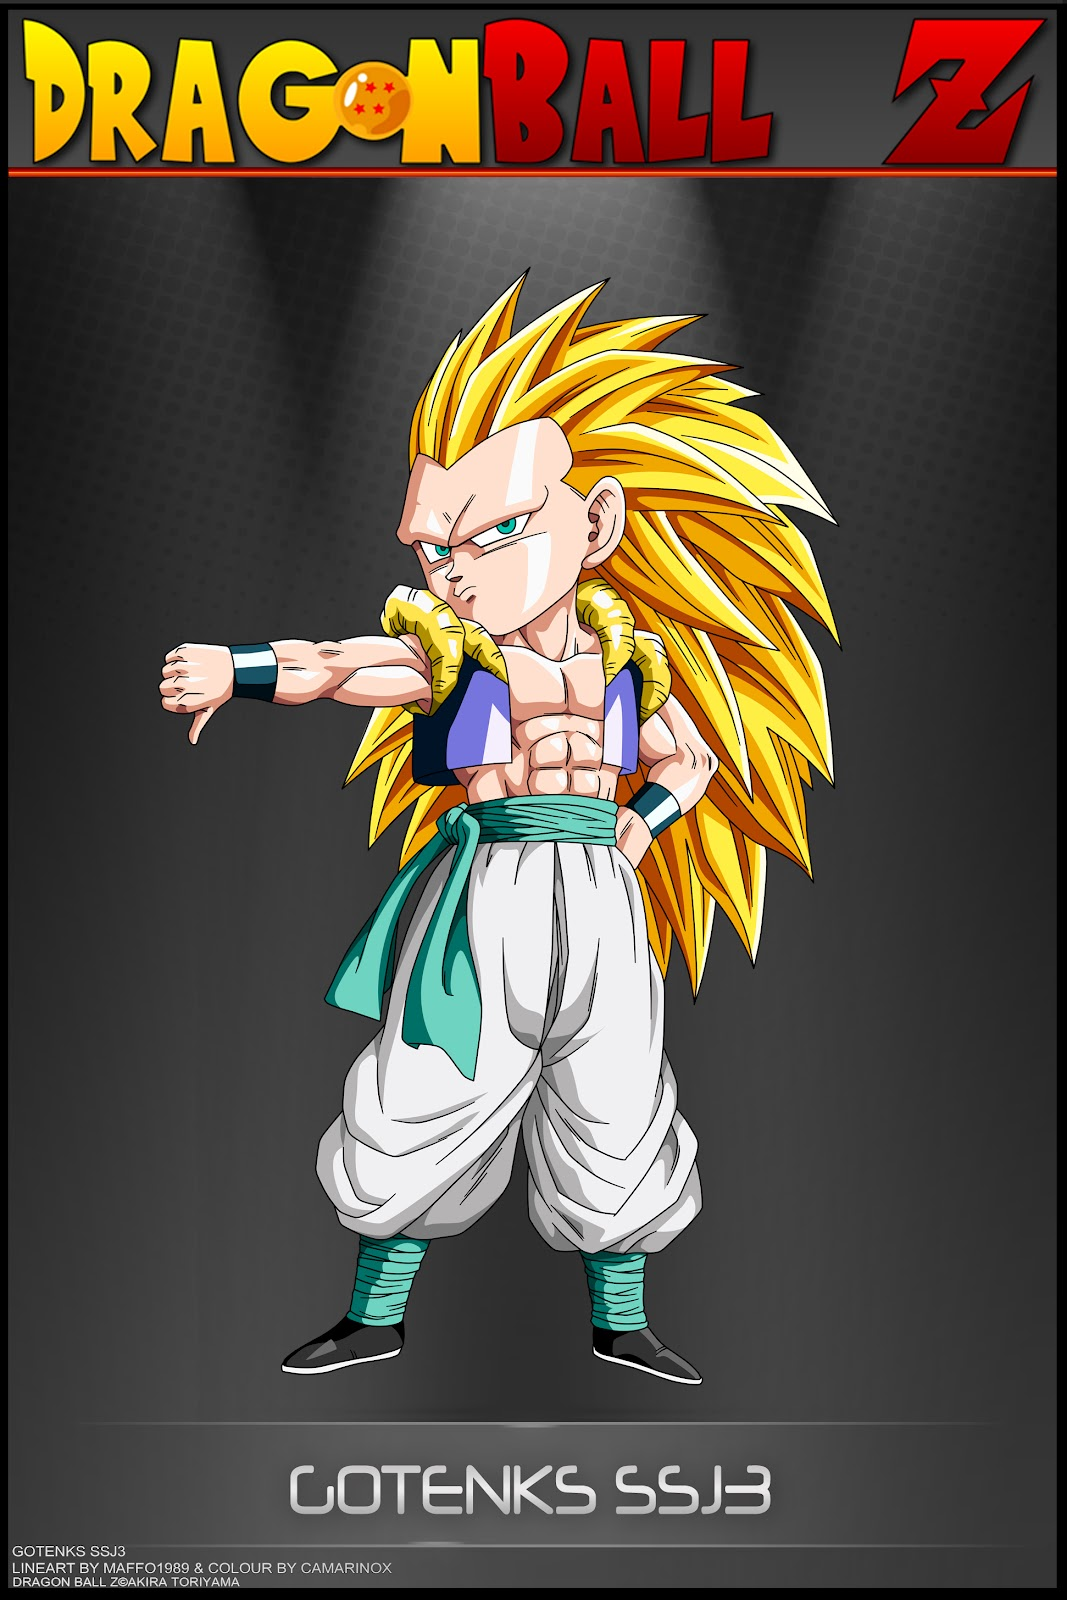 Dragon ball z wallpapers gotenks super saiyan 3 - Photo dragon ball z ...